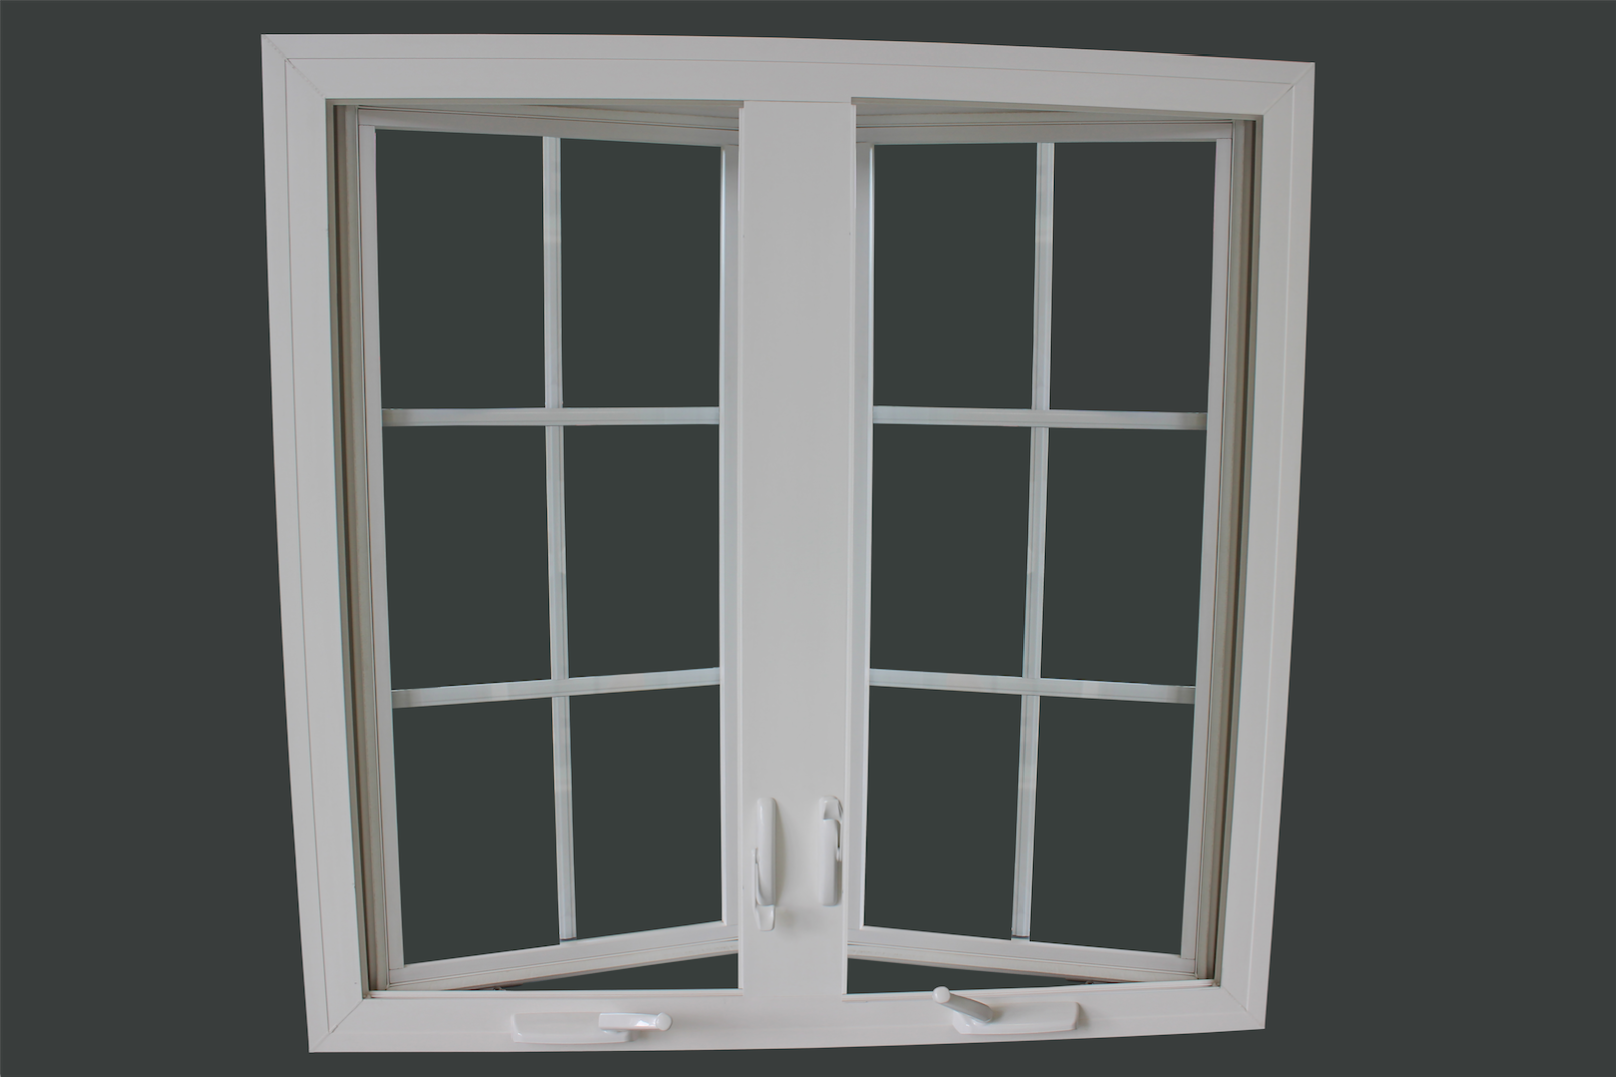 Replacement Casement Windows Specialty Wholesale Supply